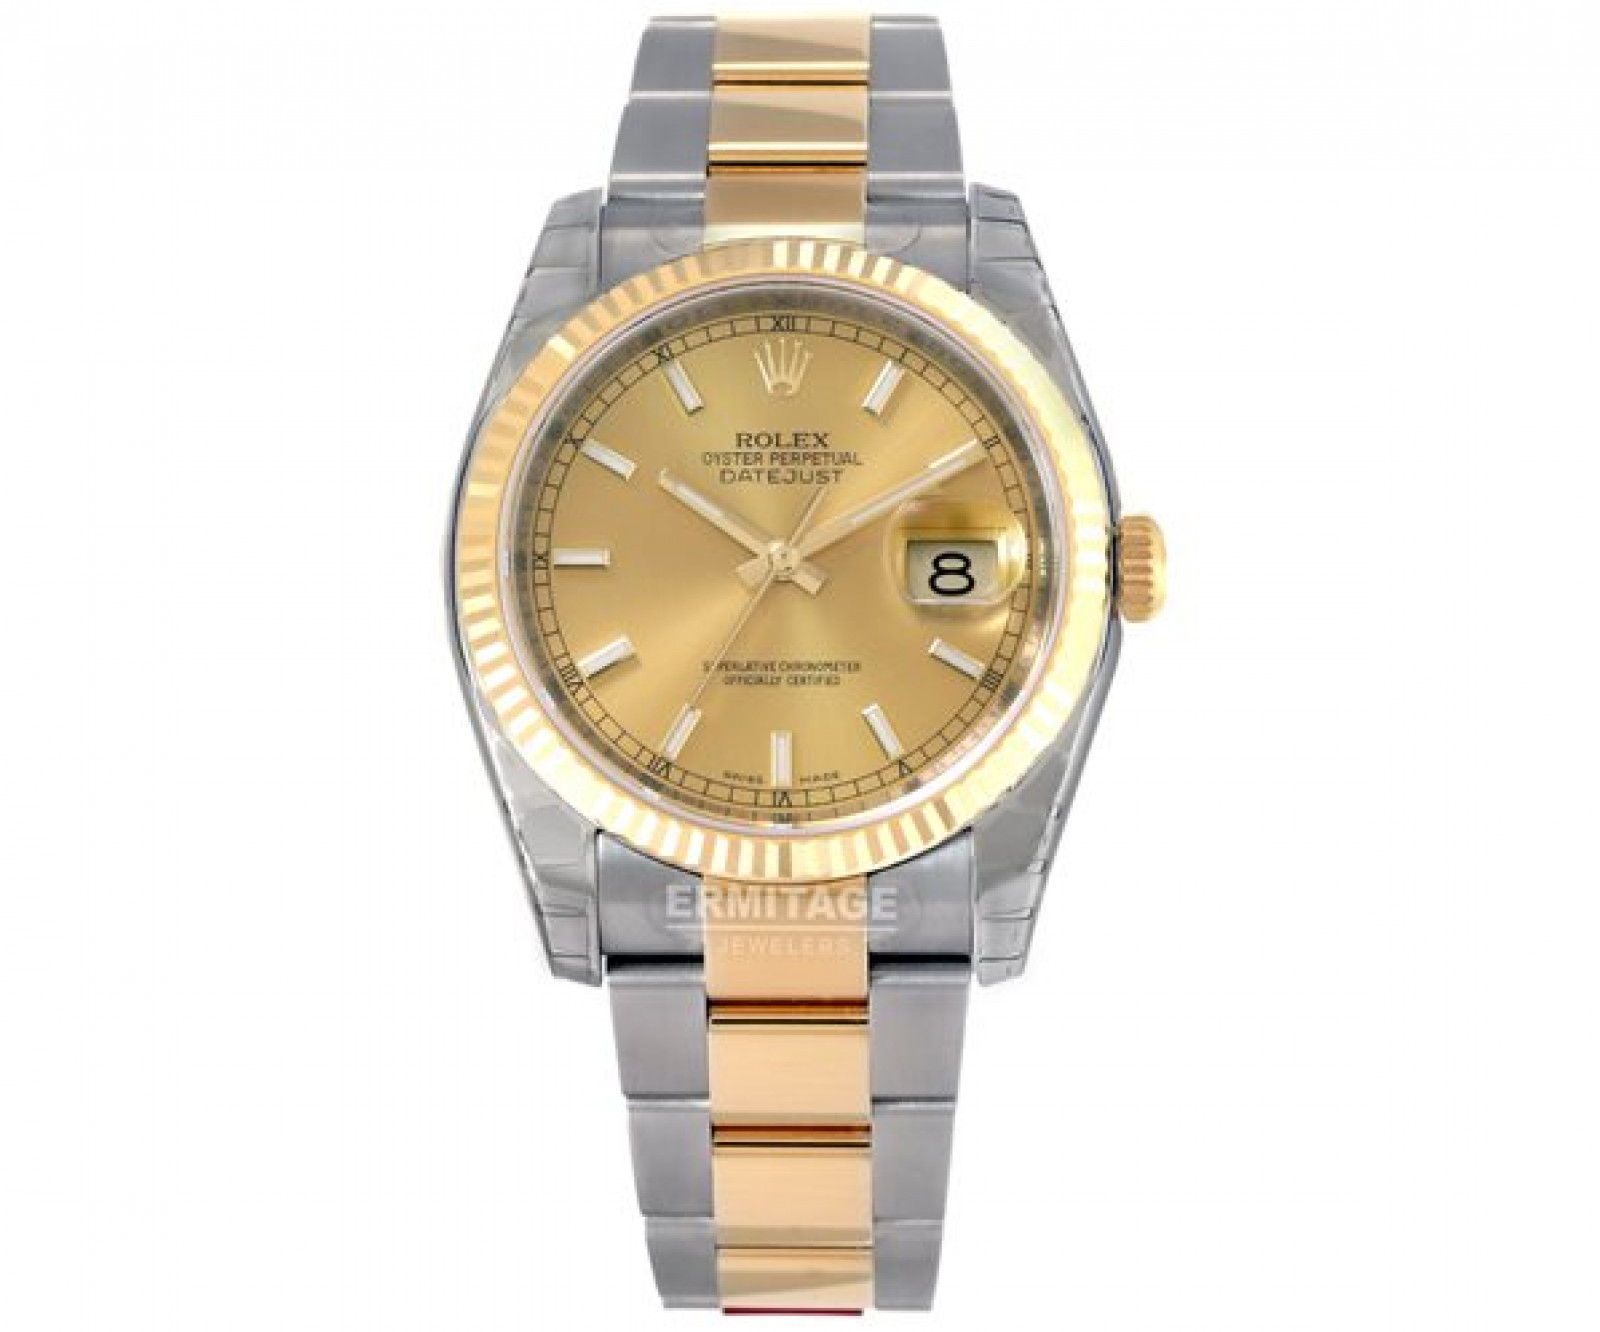 Pre-Owned Gold & Steel Rolex Datejust 116233